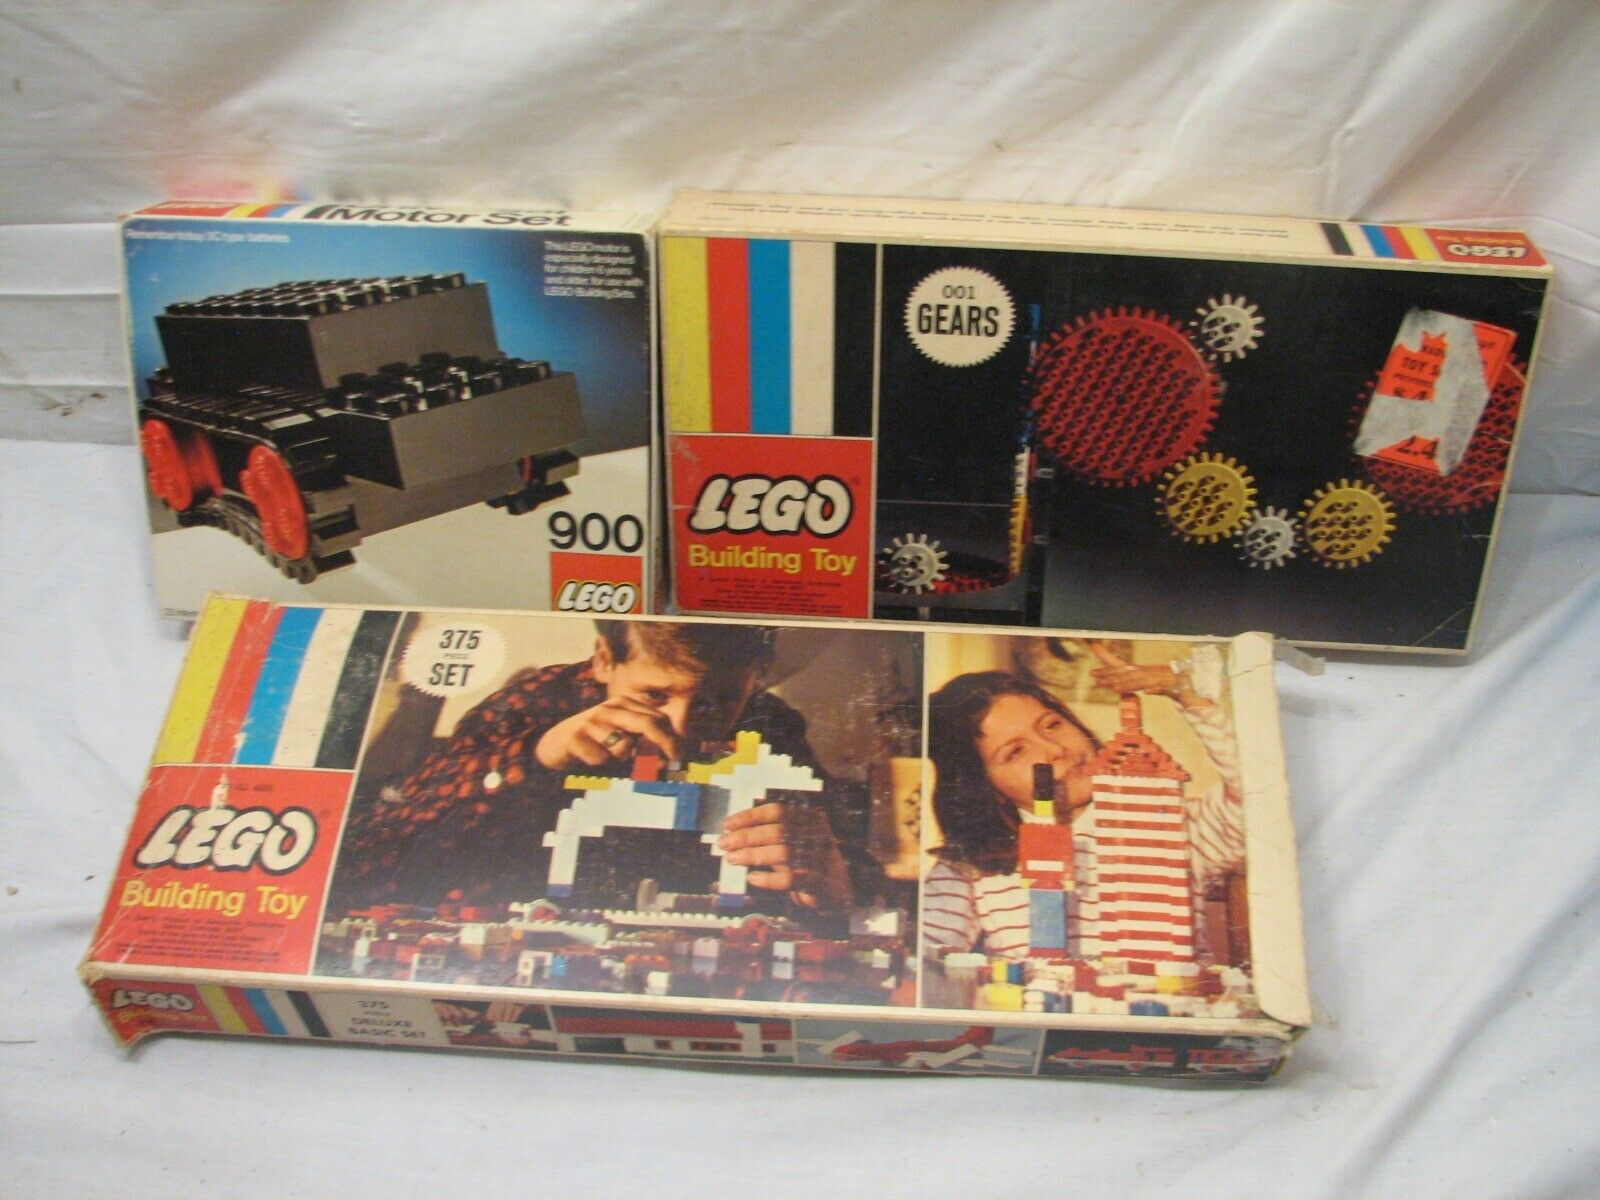 3 Vintage Lego Sets 375 Deluxe Basic 001 Gears 900 Universal Motor Set with Box